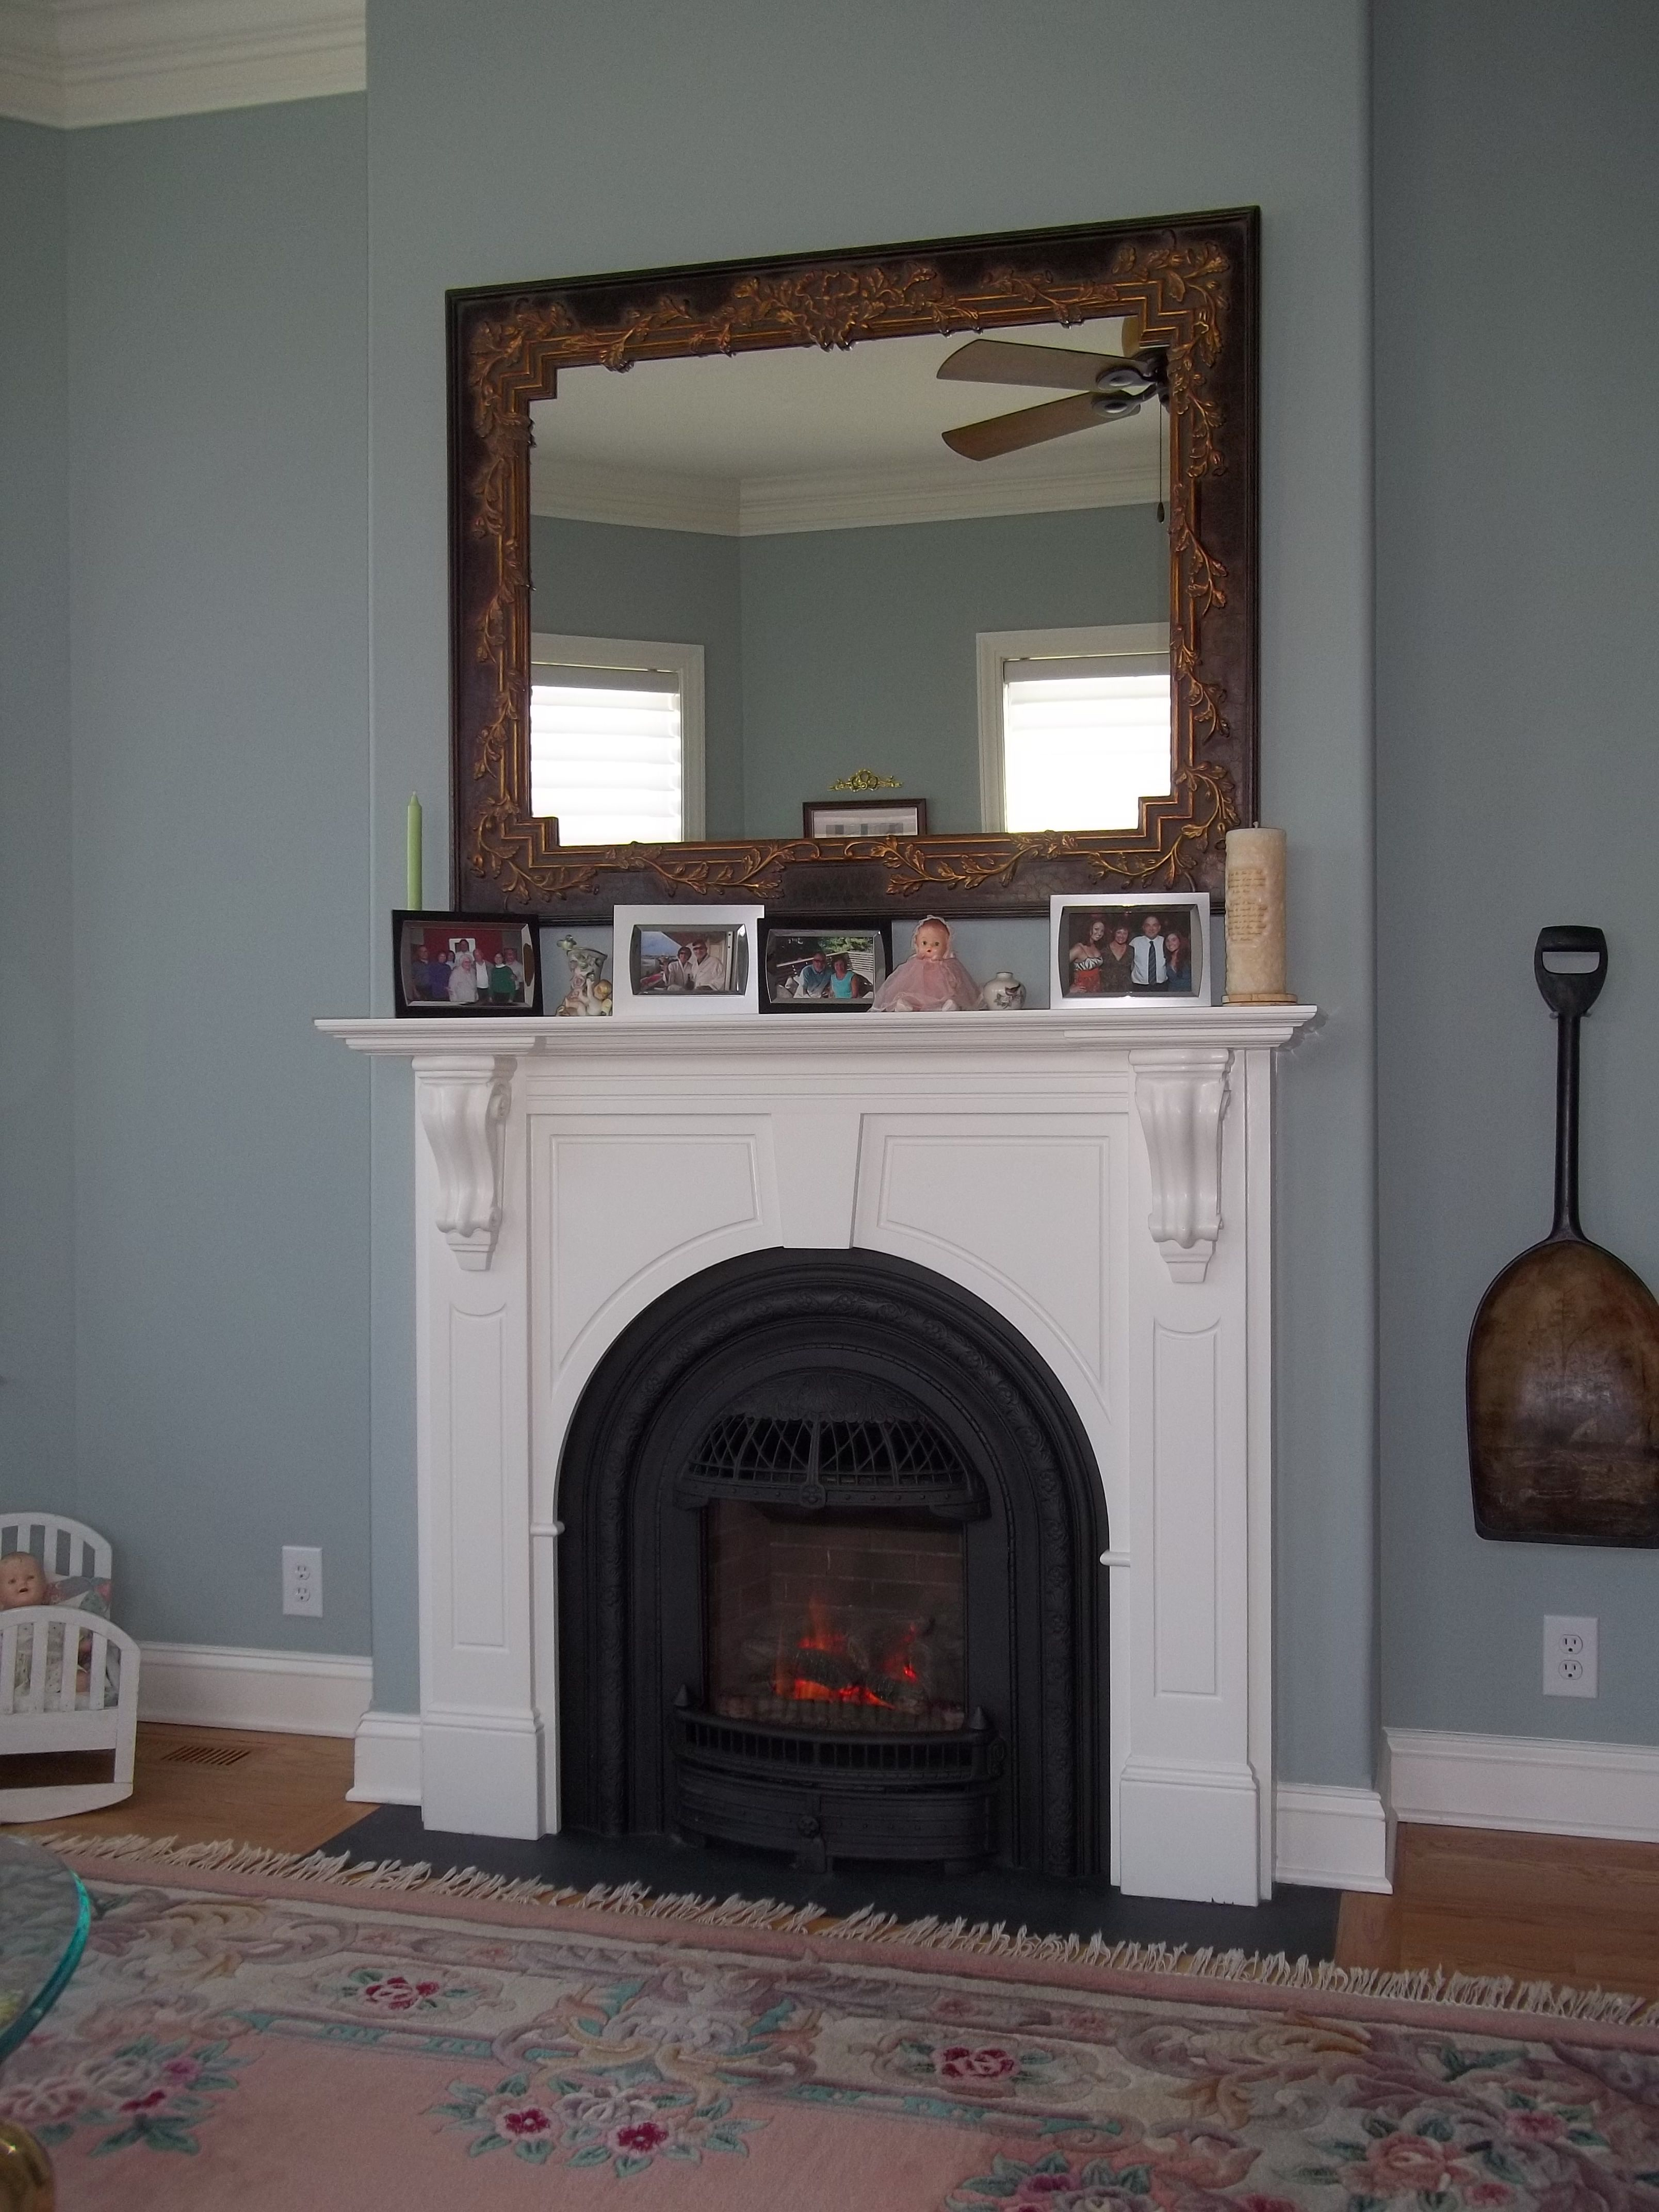 The Valor Windsor Arch Portrait Style Gas Fireplace Making A